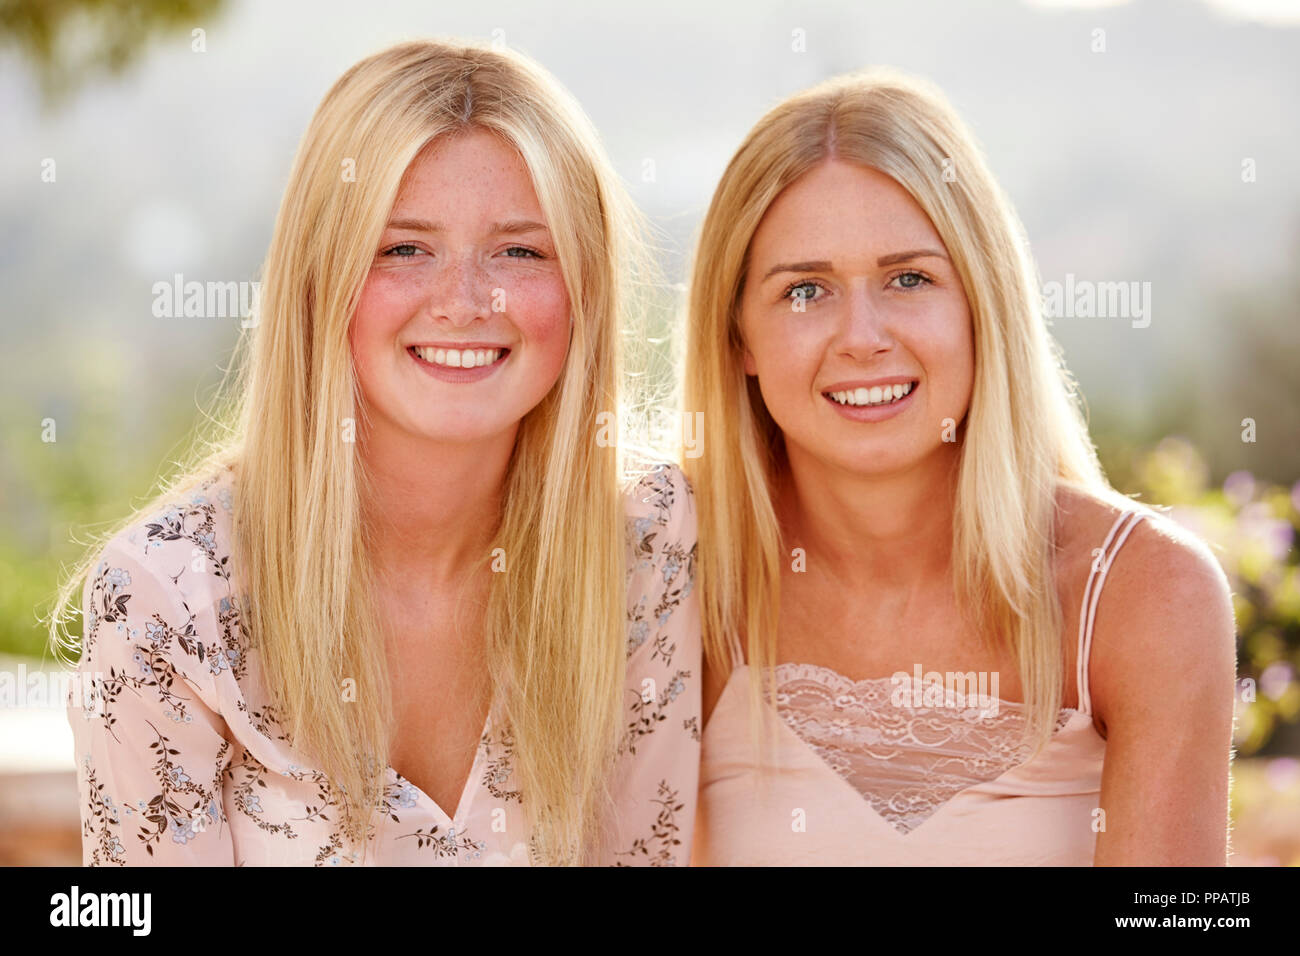 Portrait Of Two Female Friends Having Fun On Holiday Together - Stock Image